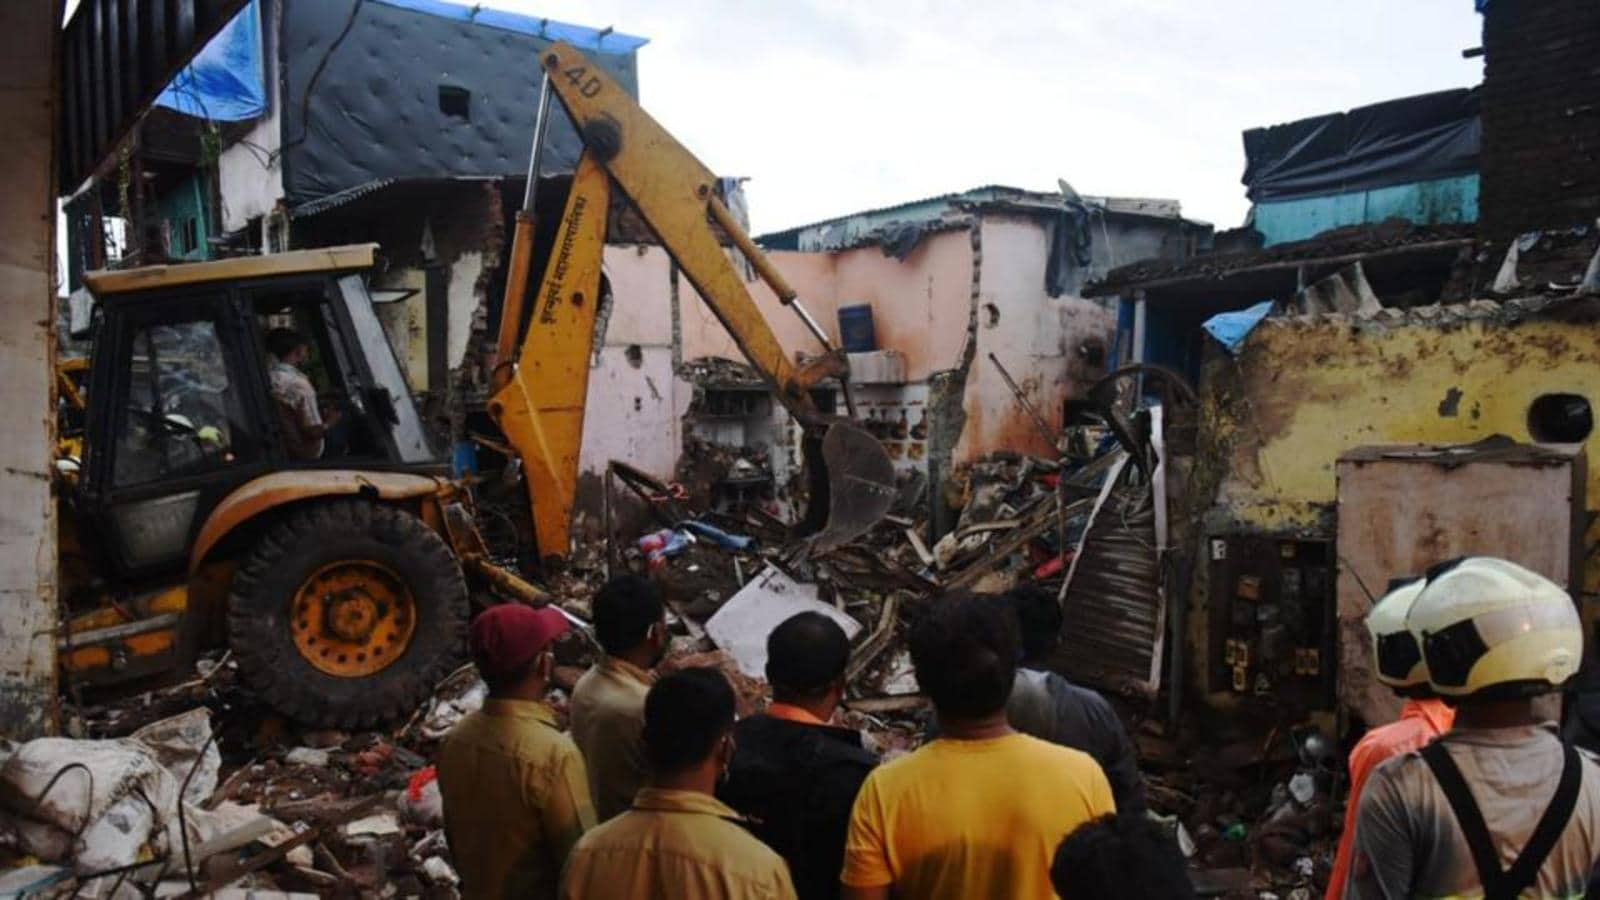 Lawlessness In Municipal Wards Costing Lives : Bombay High Court Orders Judicial Inquiry Into Mumbai Building Collapse In Which 8 Children Died